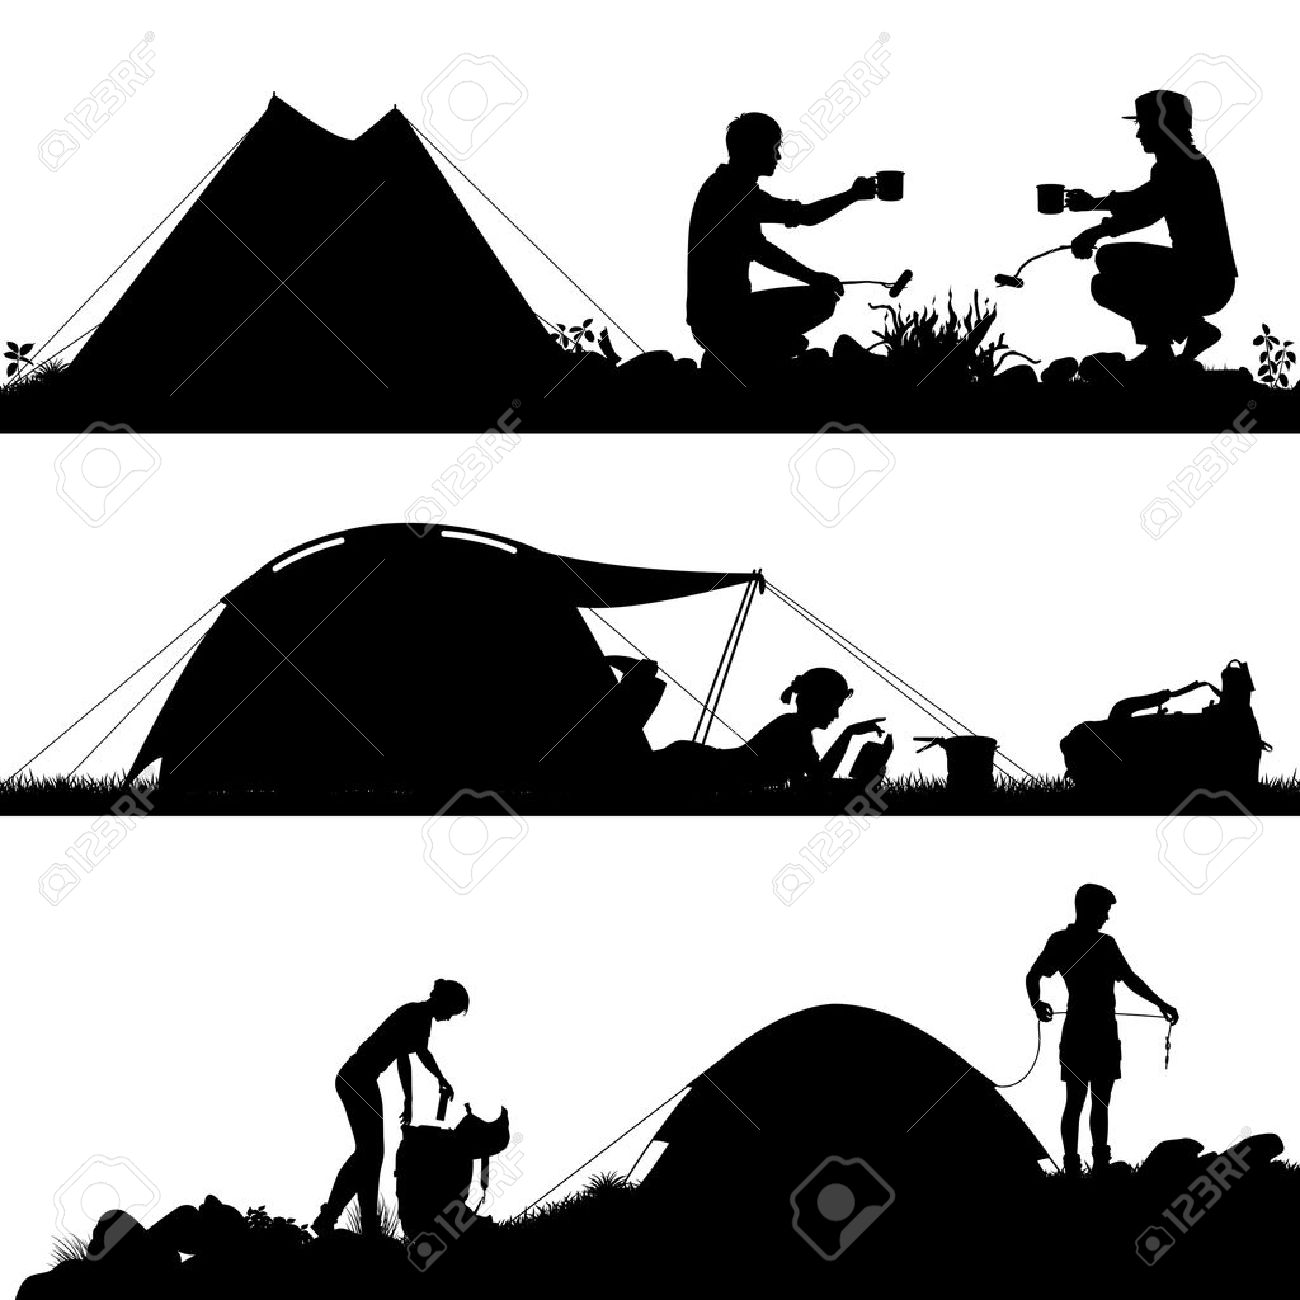 14,880 Camping Tent Stock Vector Illustration And Royalty Free.